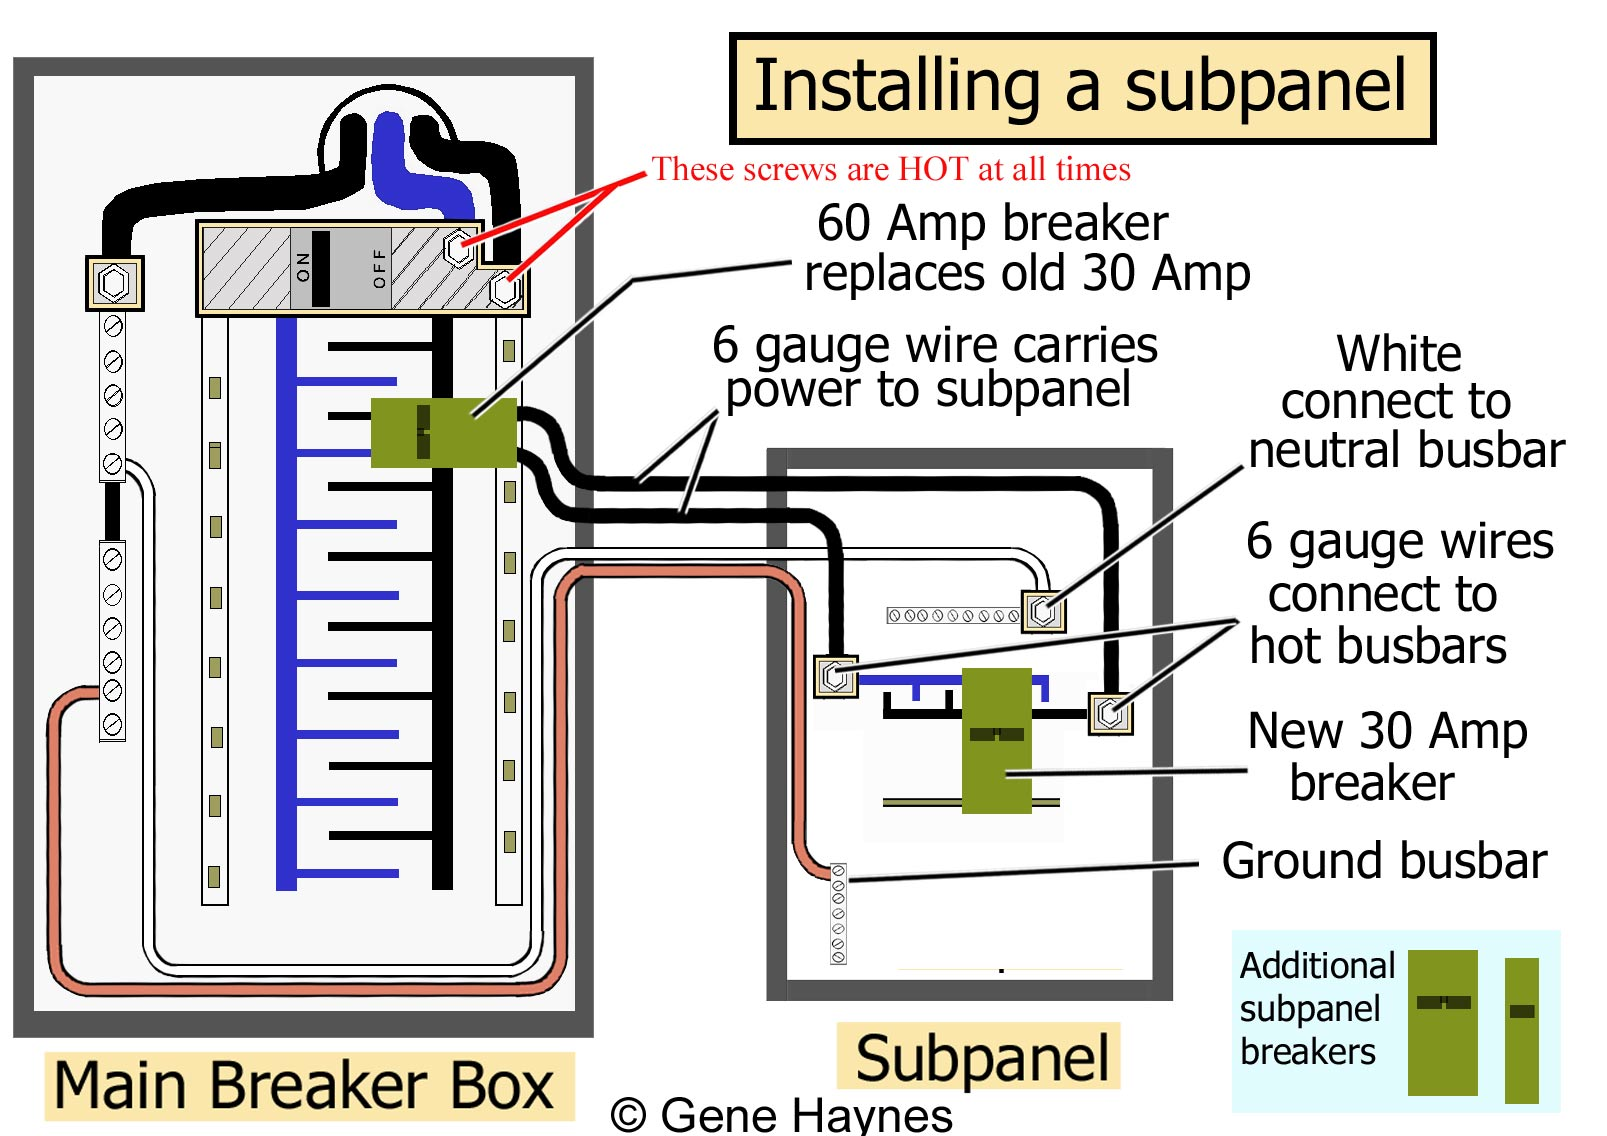 Main subpanel 2aa 240v sub panel wiring diagram wiring a subpanel \u2022 wiring diagrams 100 amp sub panel wiring diagram at edmiracle.co